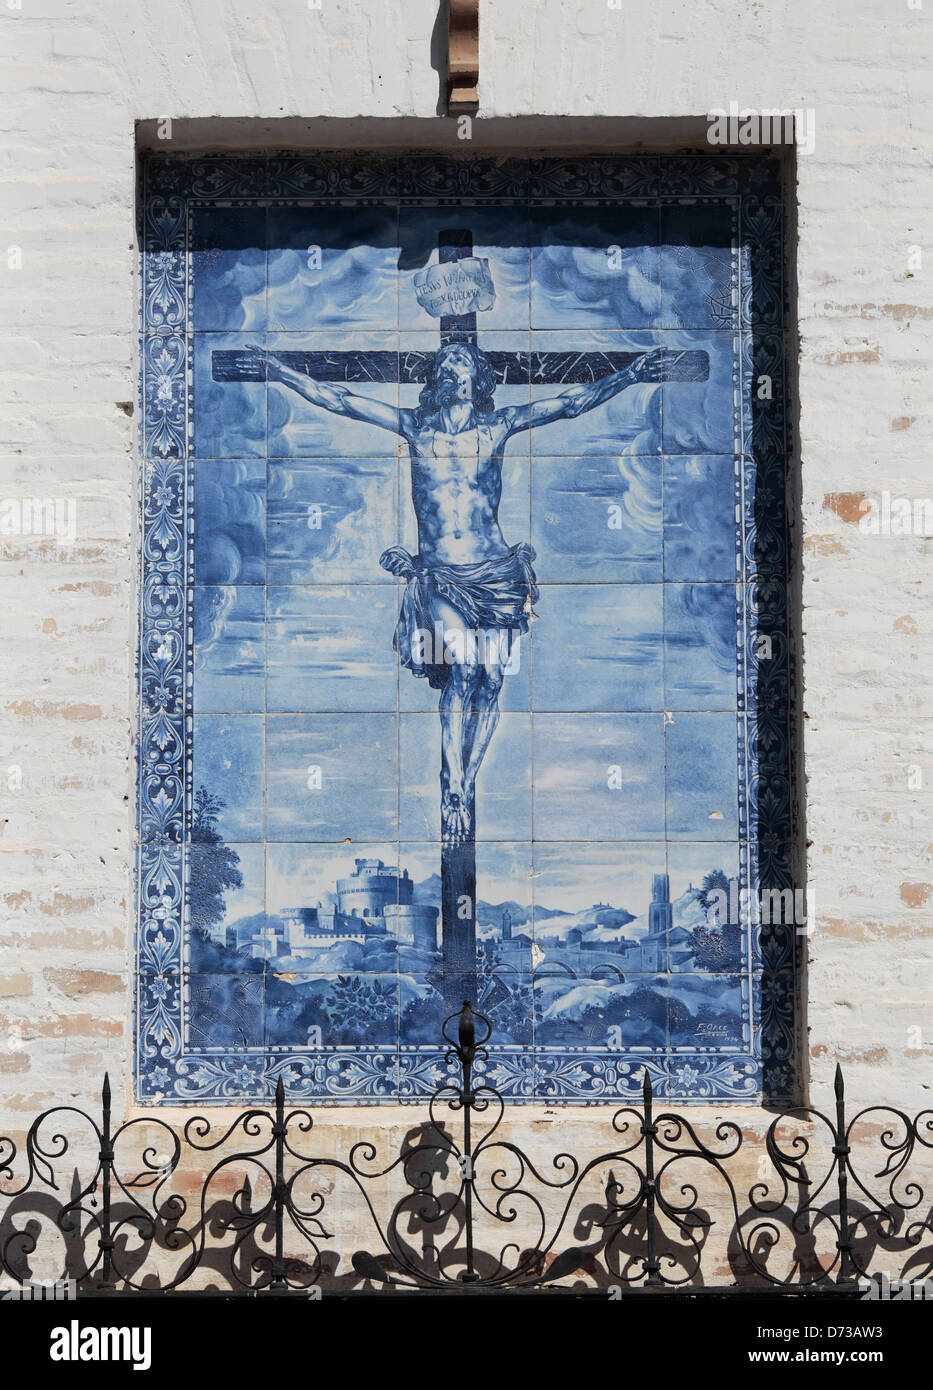 Religious imagery in Seville, Spain. - Stock Image